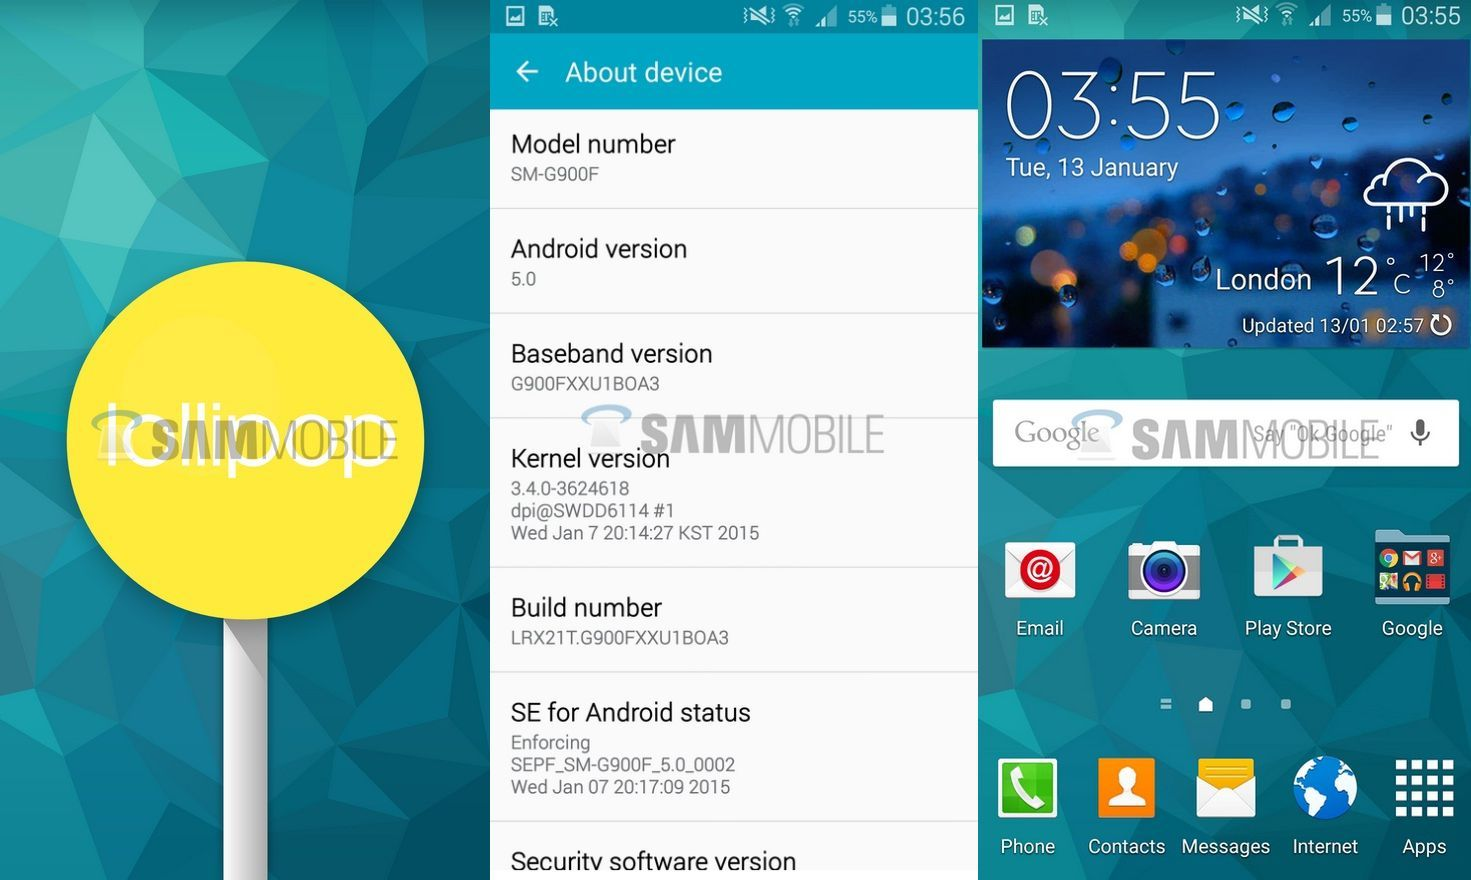 Android 5 0 G900FXXU1BOA3 Lollipop official update rolling